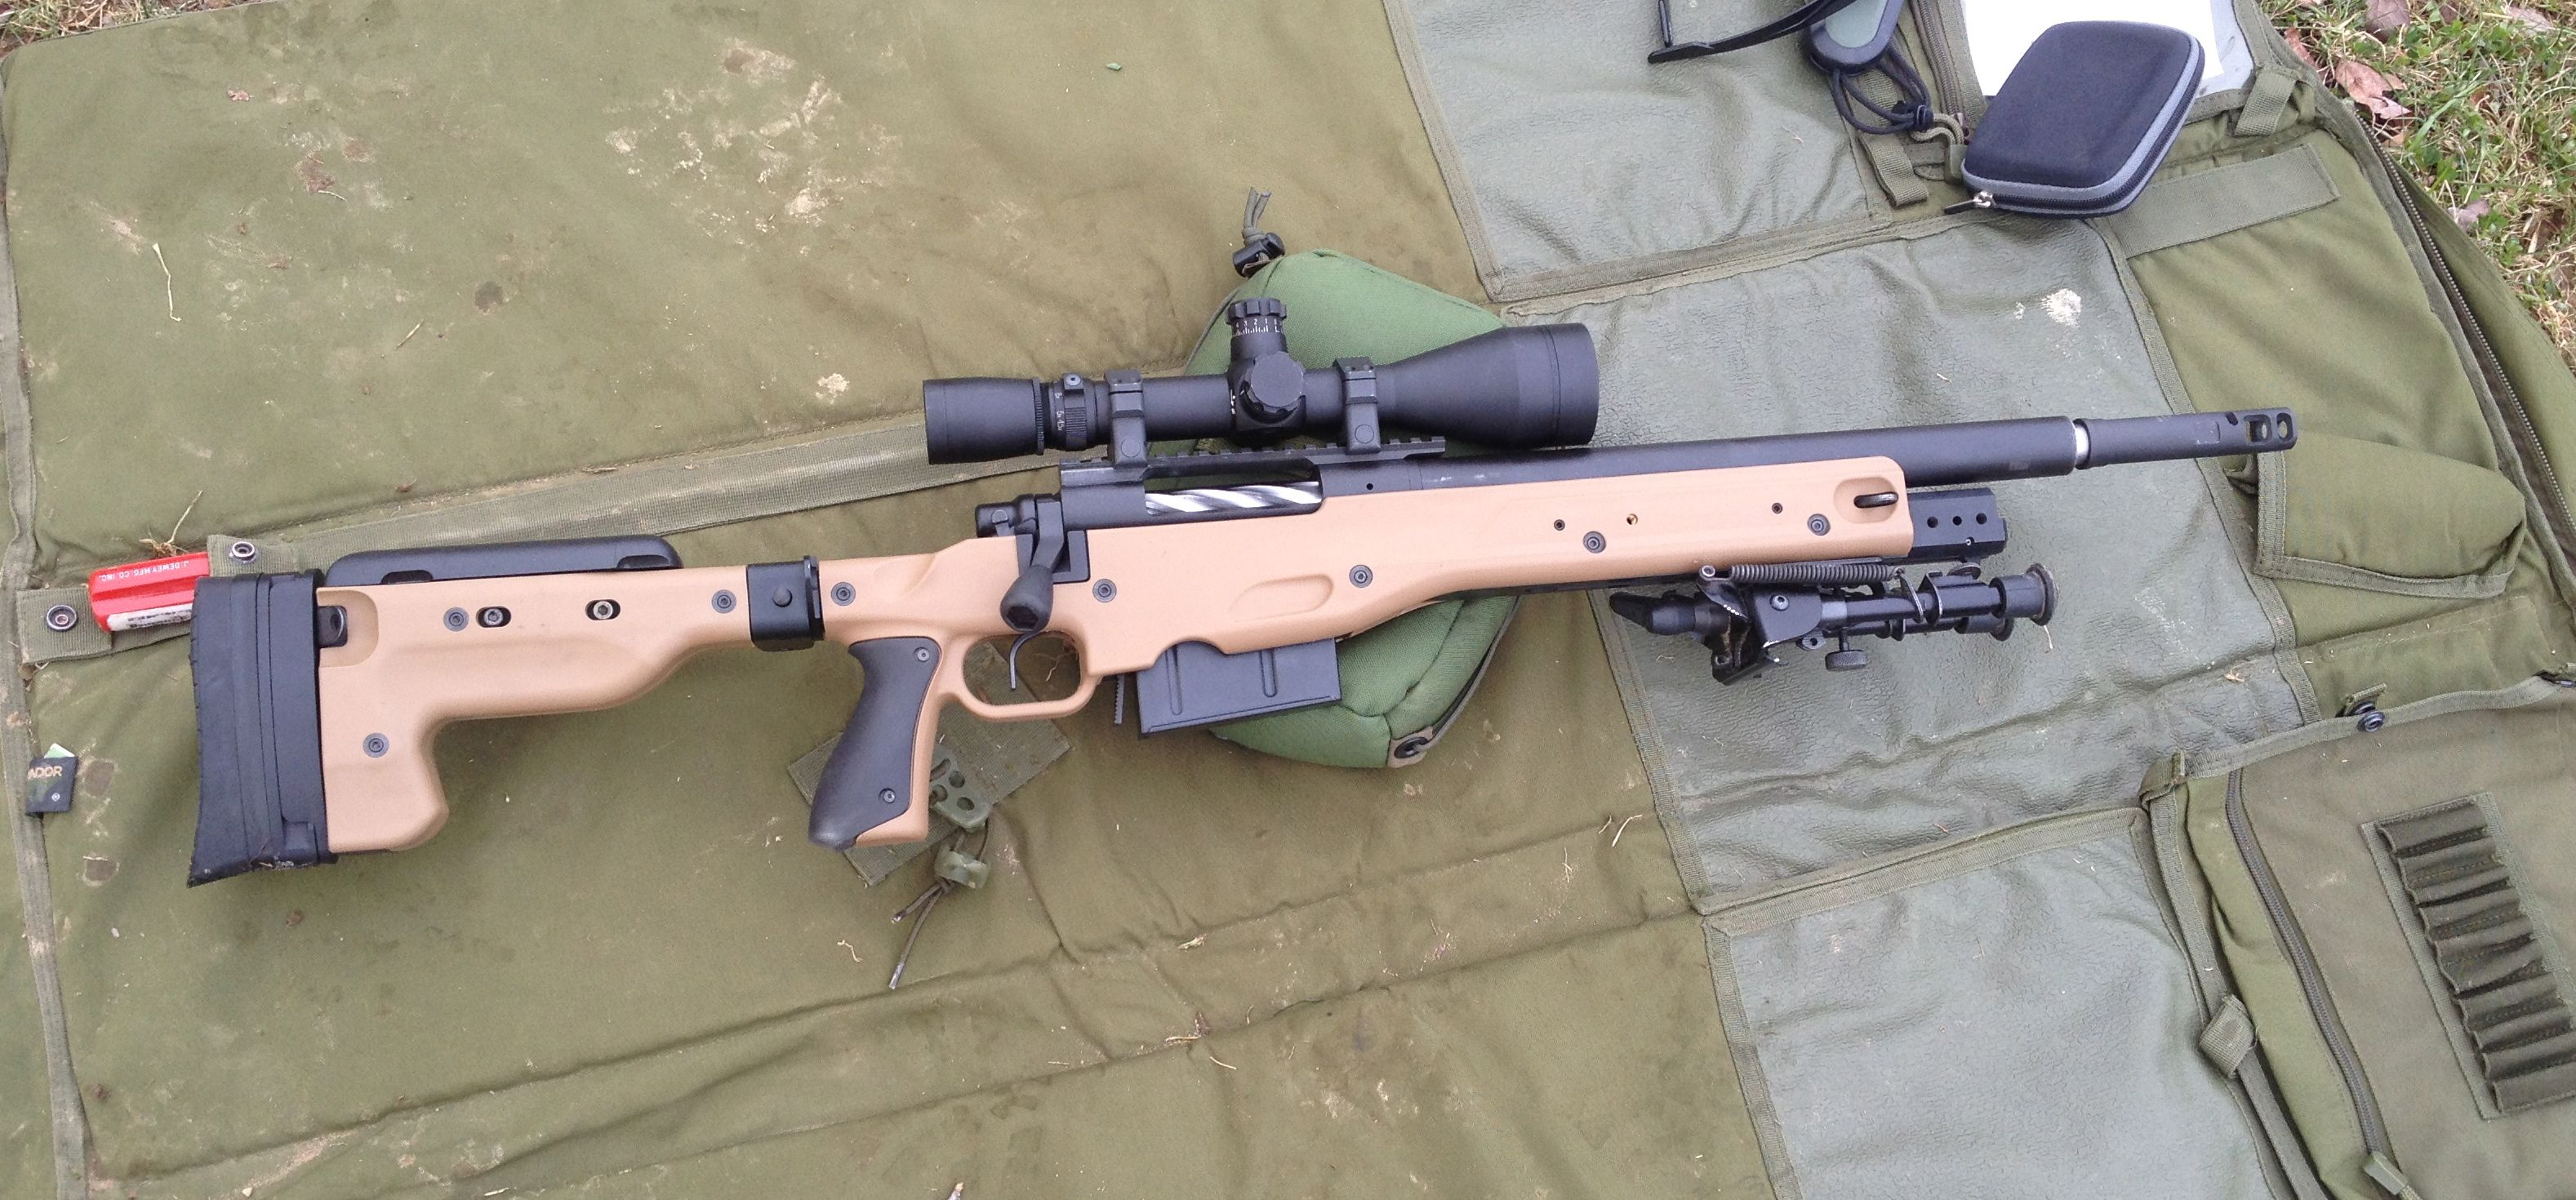 Short and Loud: The 16 inch 308 Win Precision Rifle – rifleshooter com